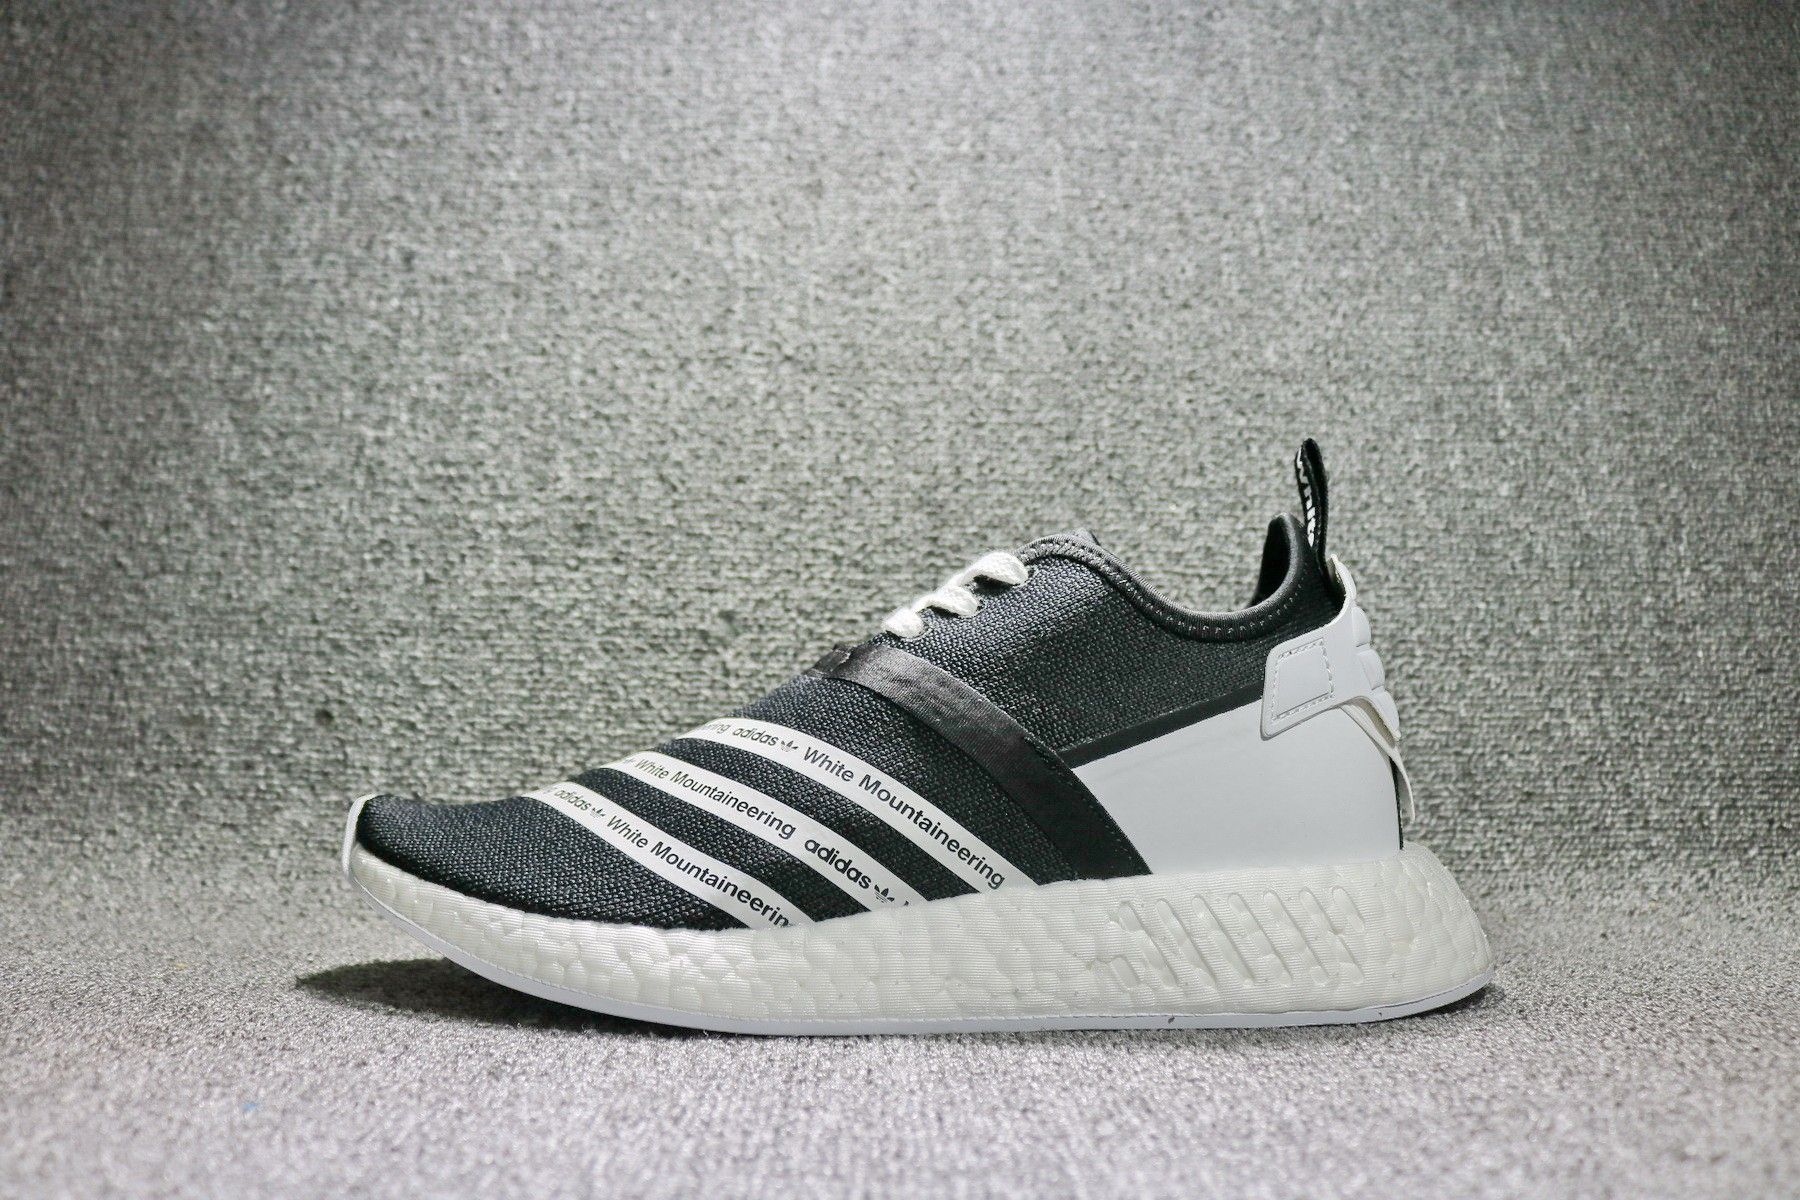 fa87f611b6e28 White Mountaineering x adidas NMD R2 Black White CG3648